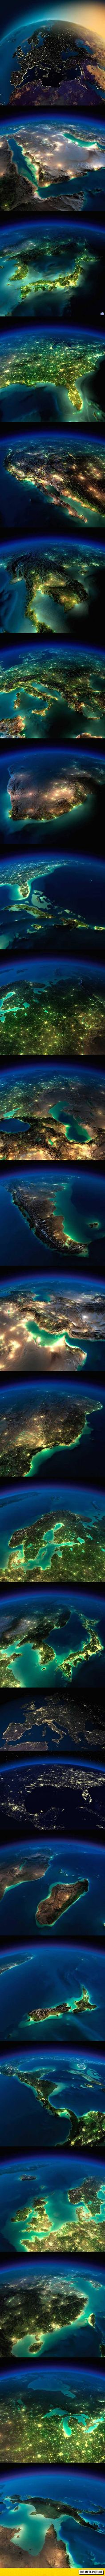 "An amazing gallery of earth images.  Looks like Christmas lights in the snow.  But they are also depressing.  Those lights also represent, loss of space for wildlife, diminished overall resources, rampant destruction of trees and waterways, overpopulation, loss of nighttime skies, depletion of ocean fishes, and runaway greenhouse effects.  Some say, we're going through another ""mass extinction"", which, if true, means that even man will be cut down to a few hundred, just like last time."